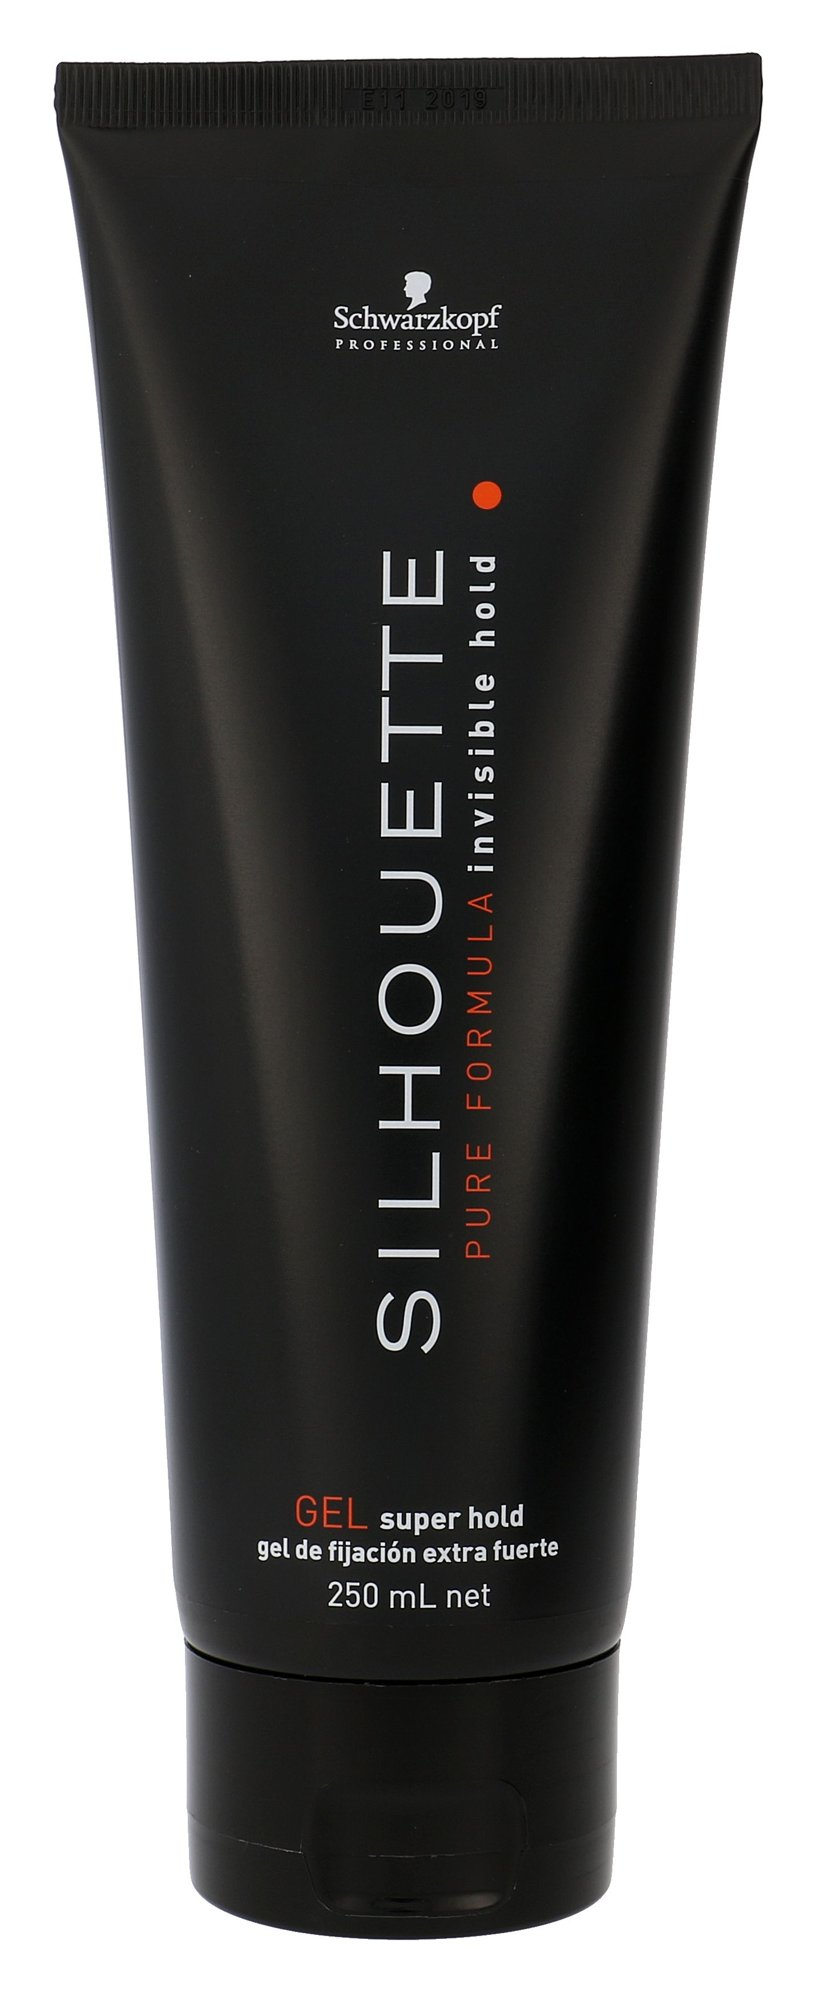 Schwarzkopf Silhouette Super Hold Gel Cosmetic 250ml